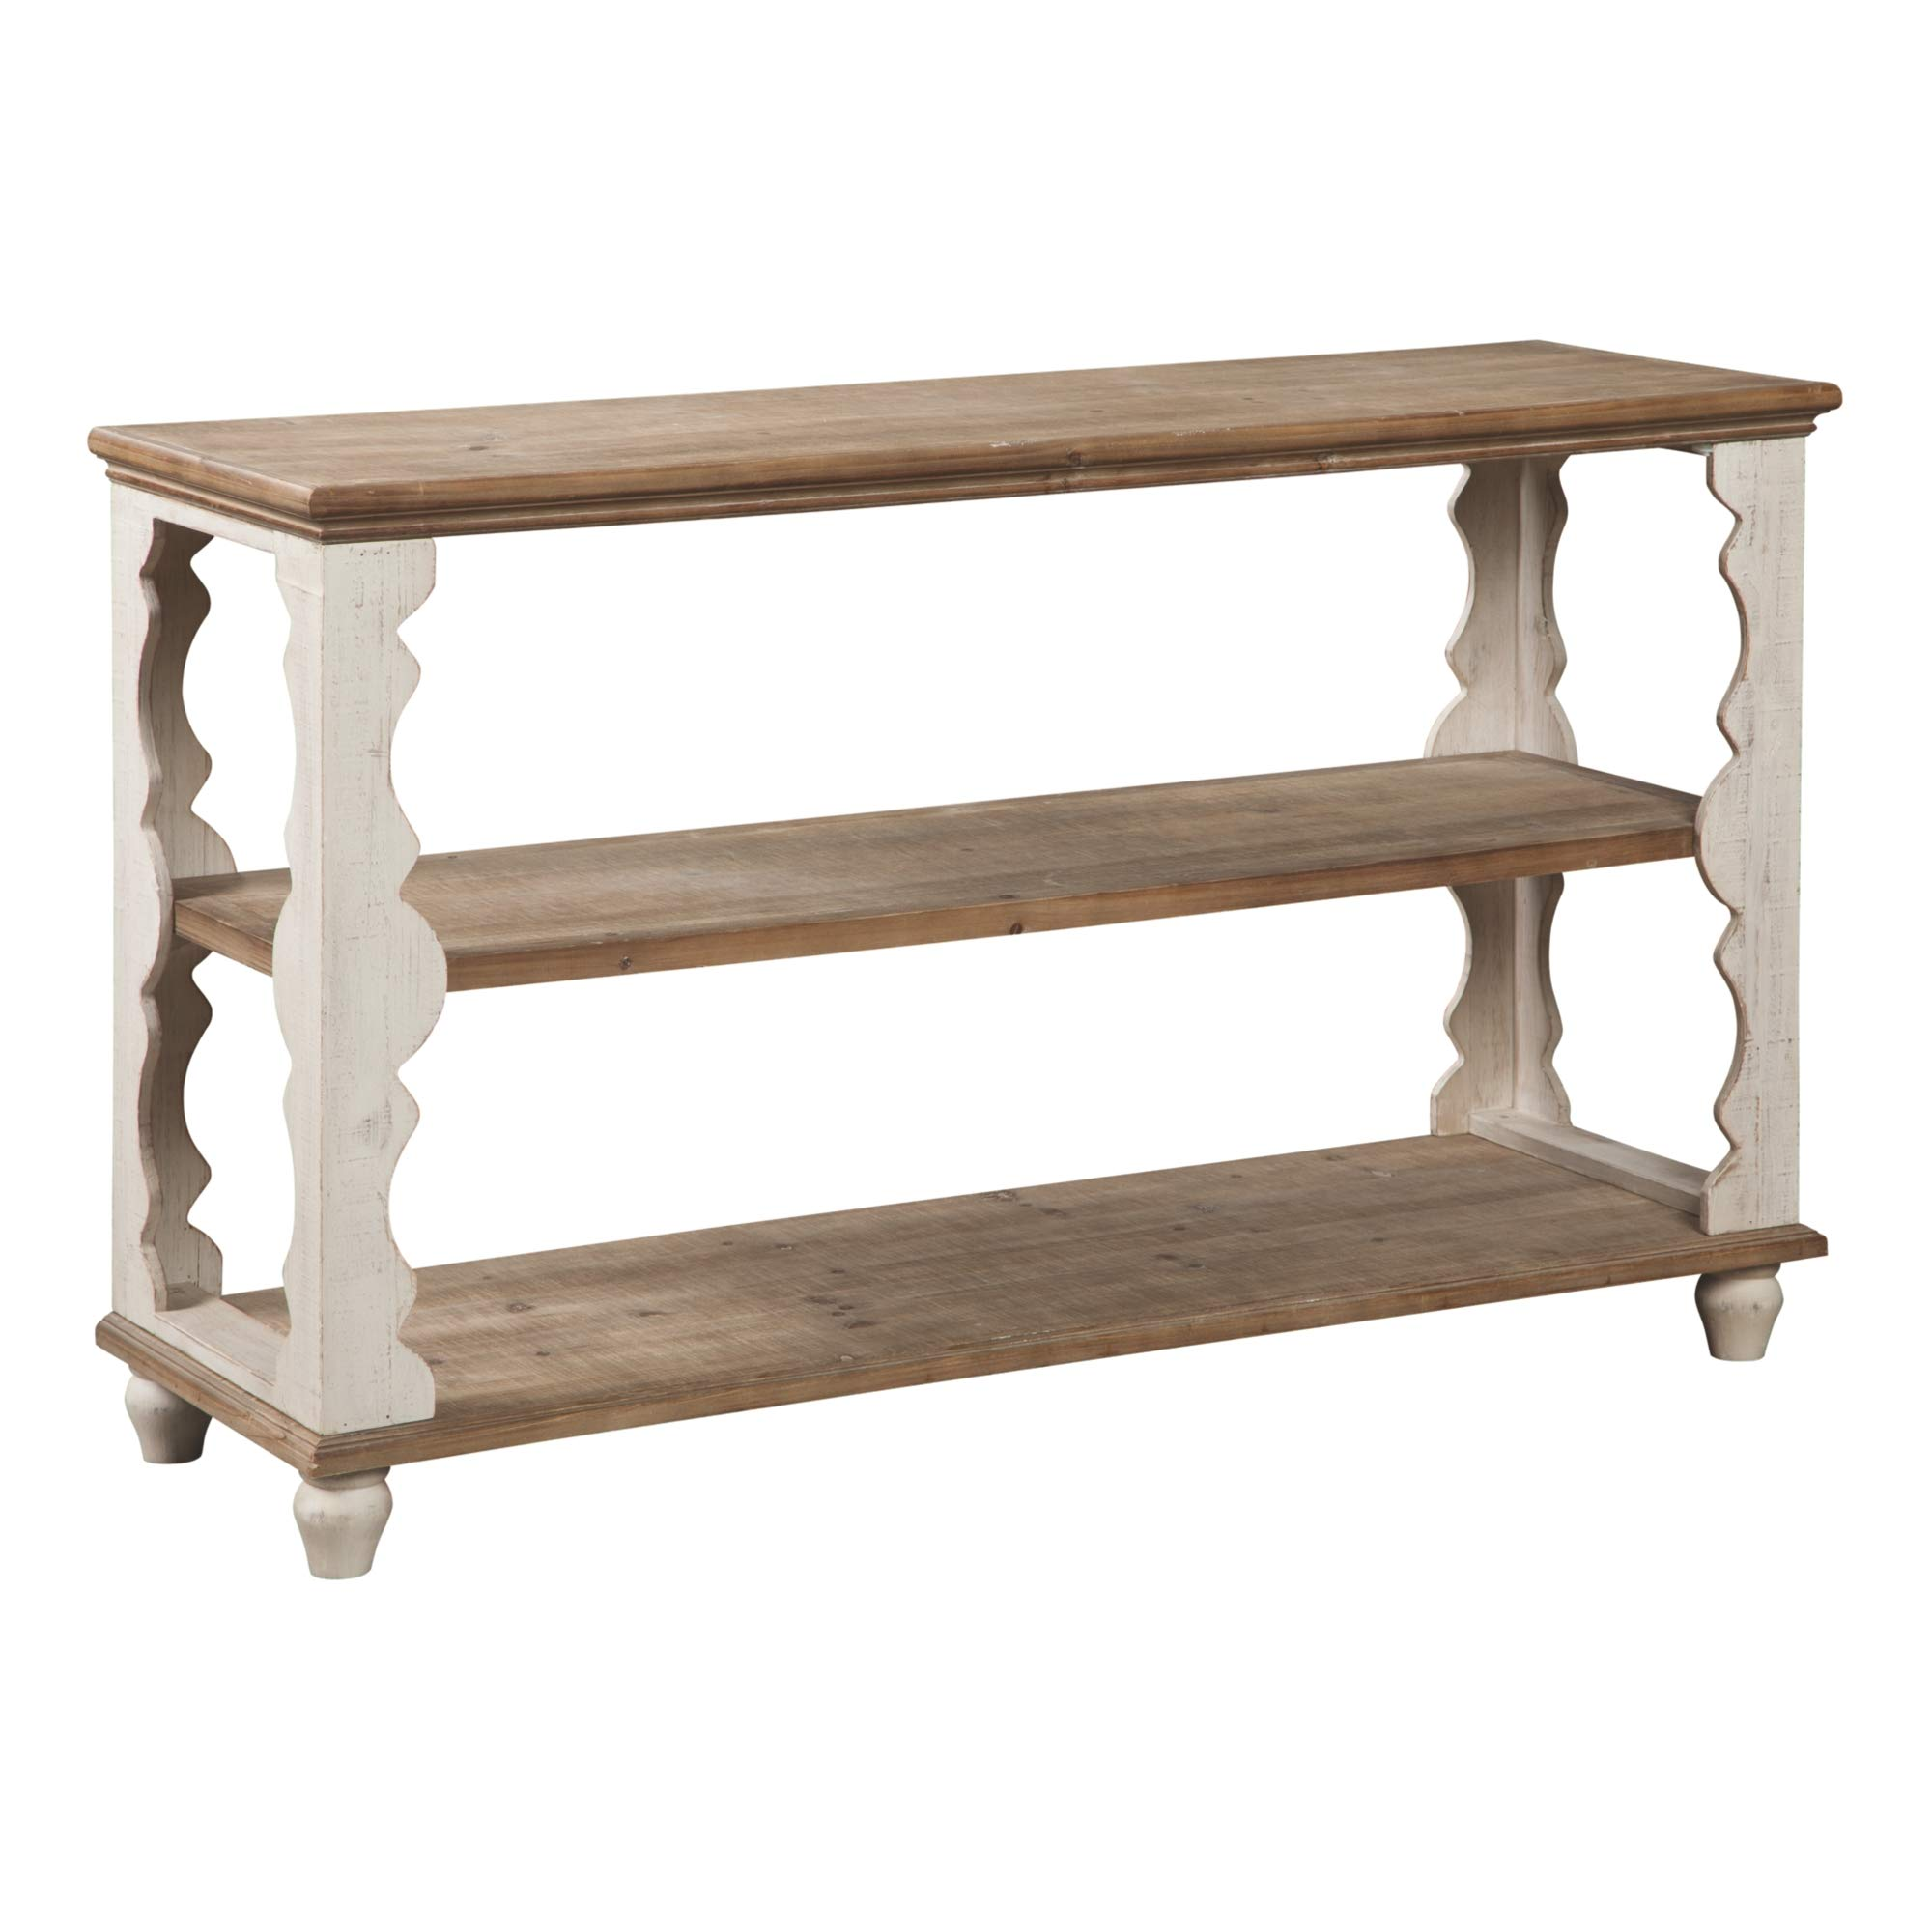 Ashley Furniture Signature Design - Alwyndale Console Sofa Table - Casual - Antique White/Brown by Signature Design by Ashley